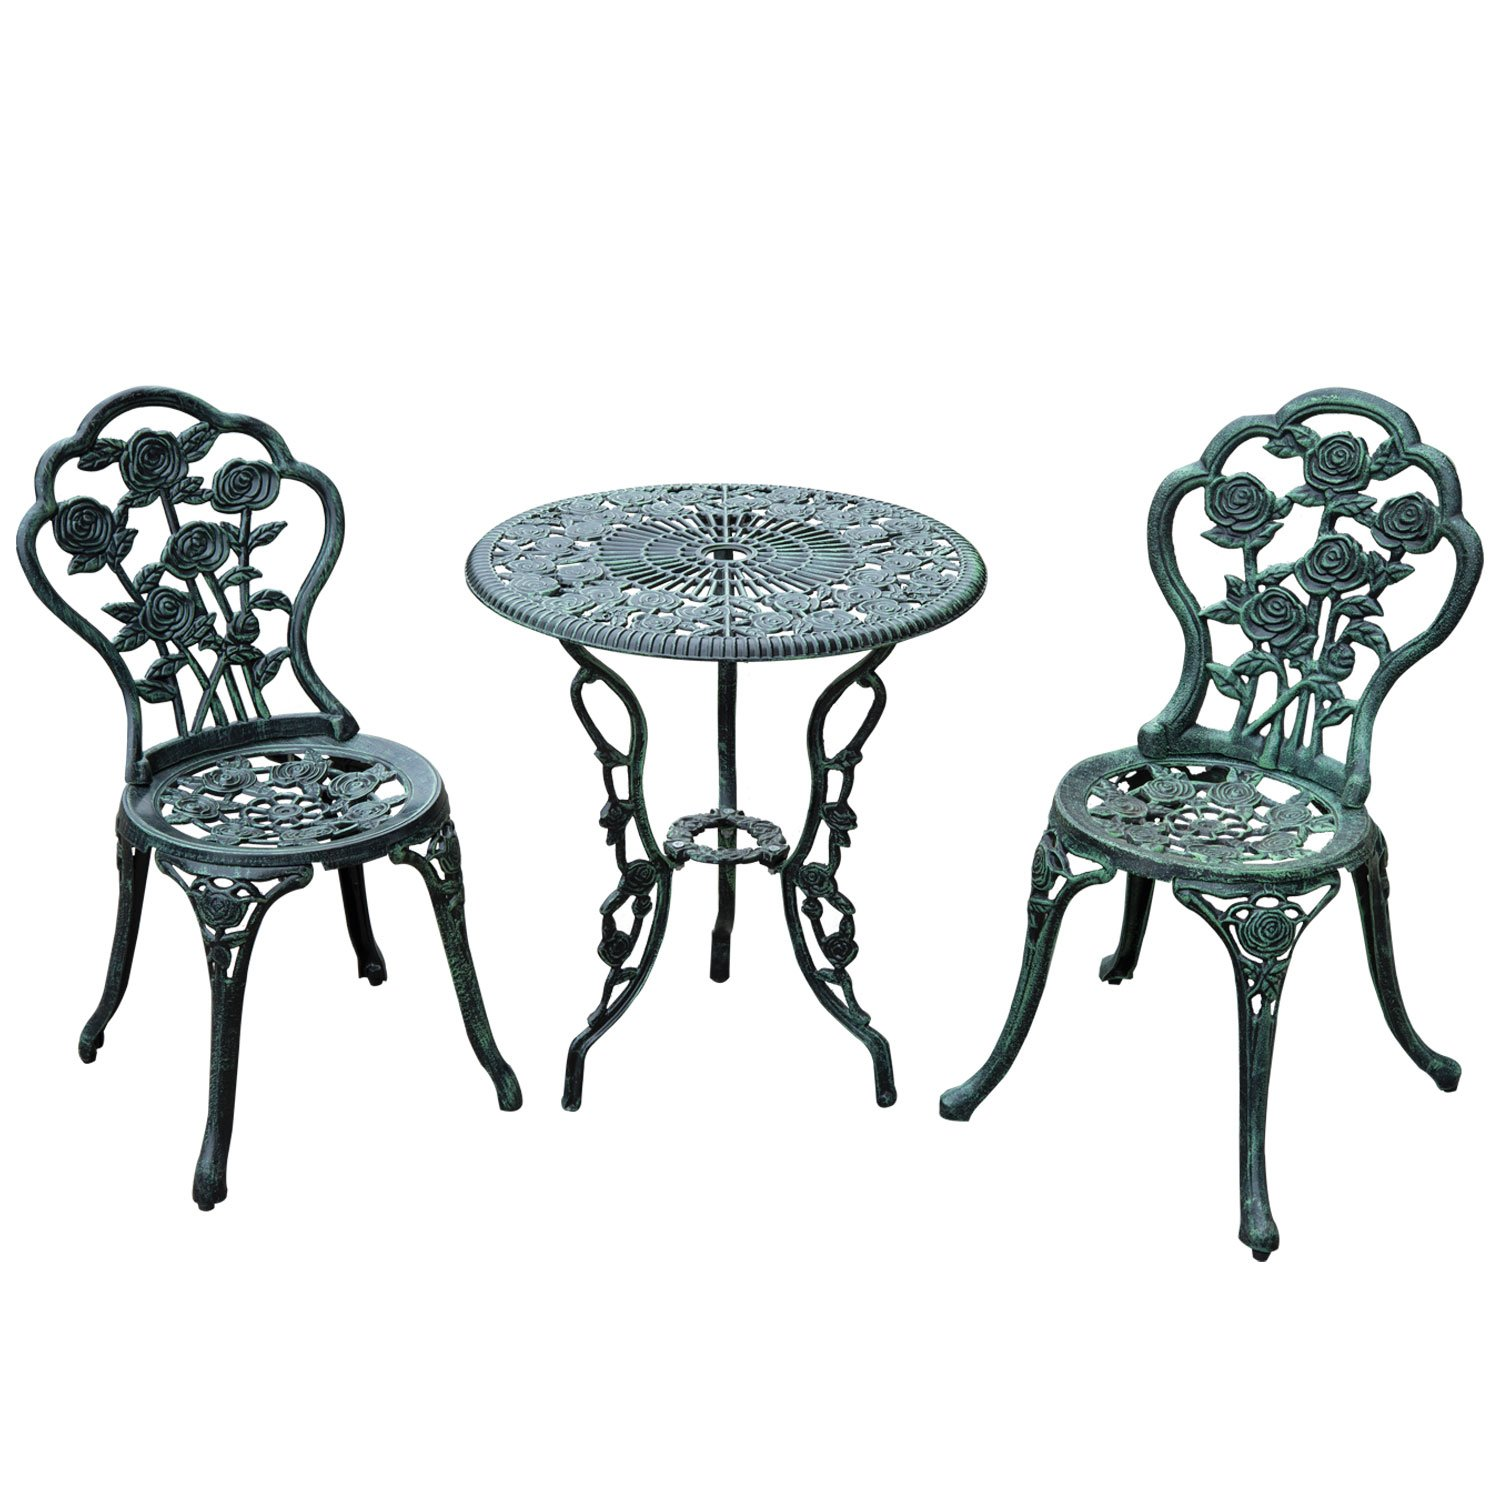 Amazoncom Outsunny Piece Outdoor Cast Iron Patio Furniture - Bistro table set